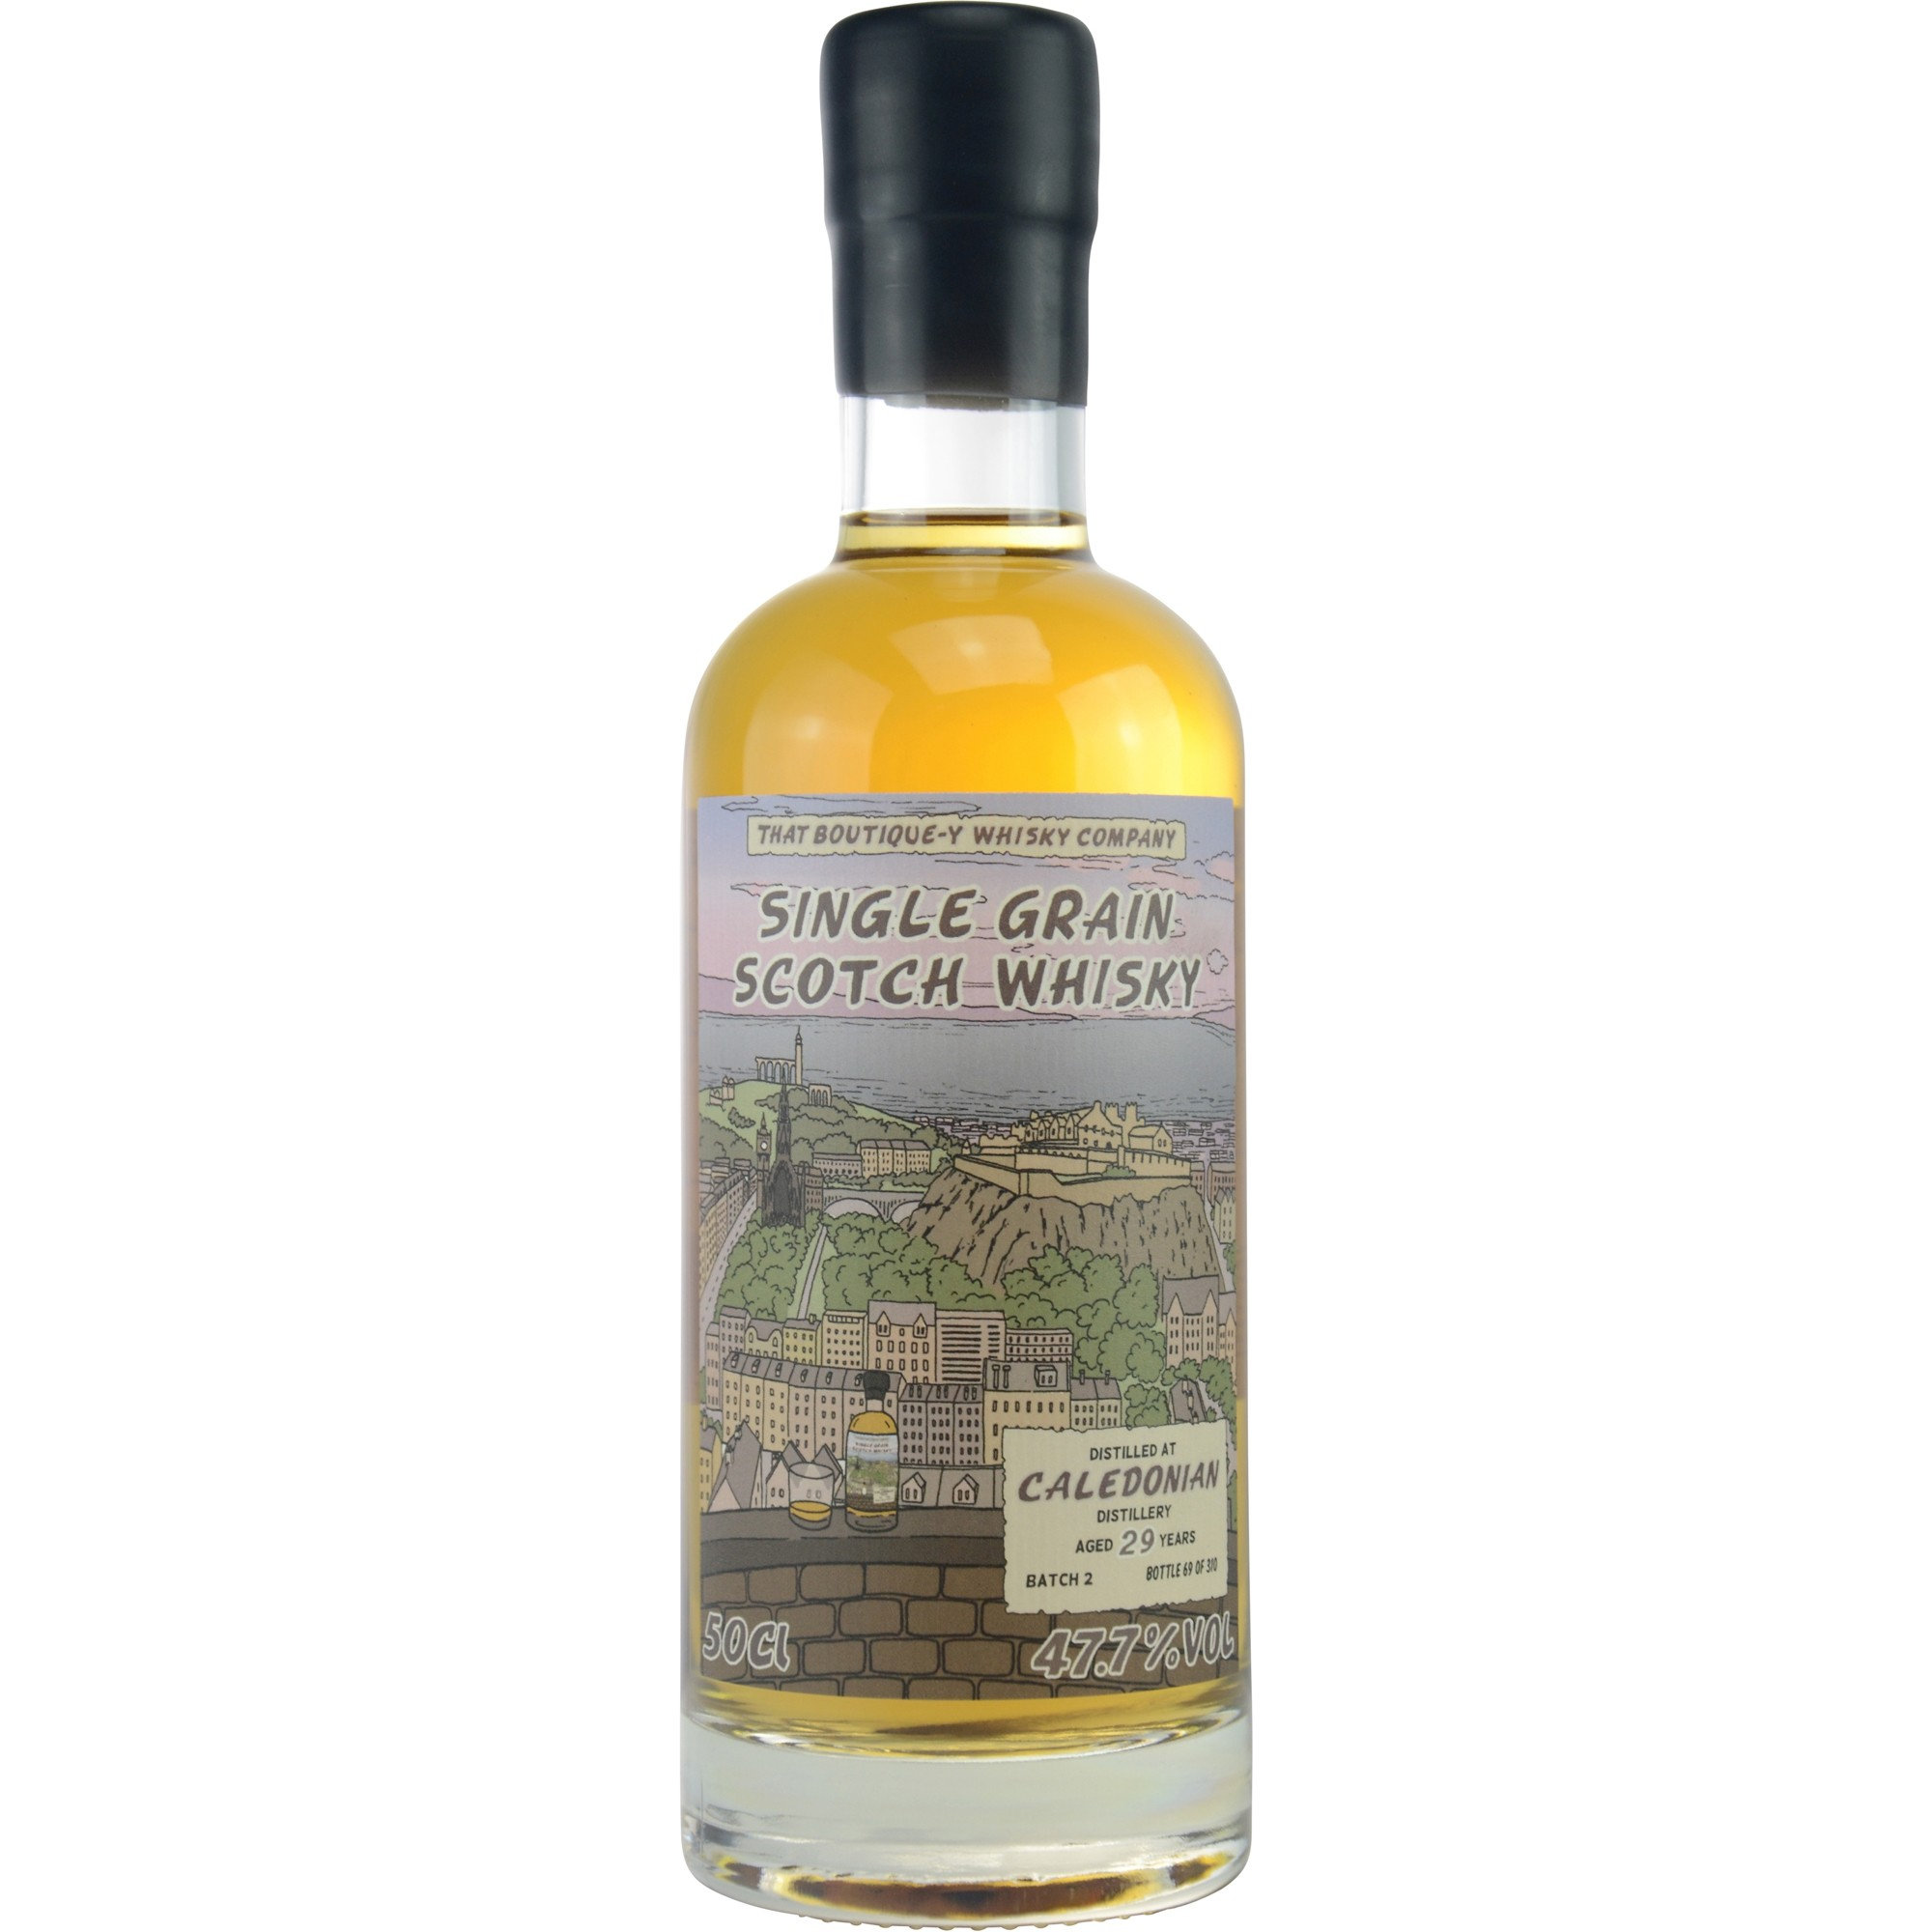 Caledonian 29 Jahre - Batch 2 - Bourbon Hogshead (That Boutique-y Whisky Company)